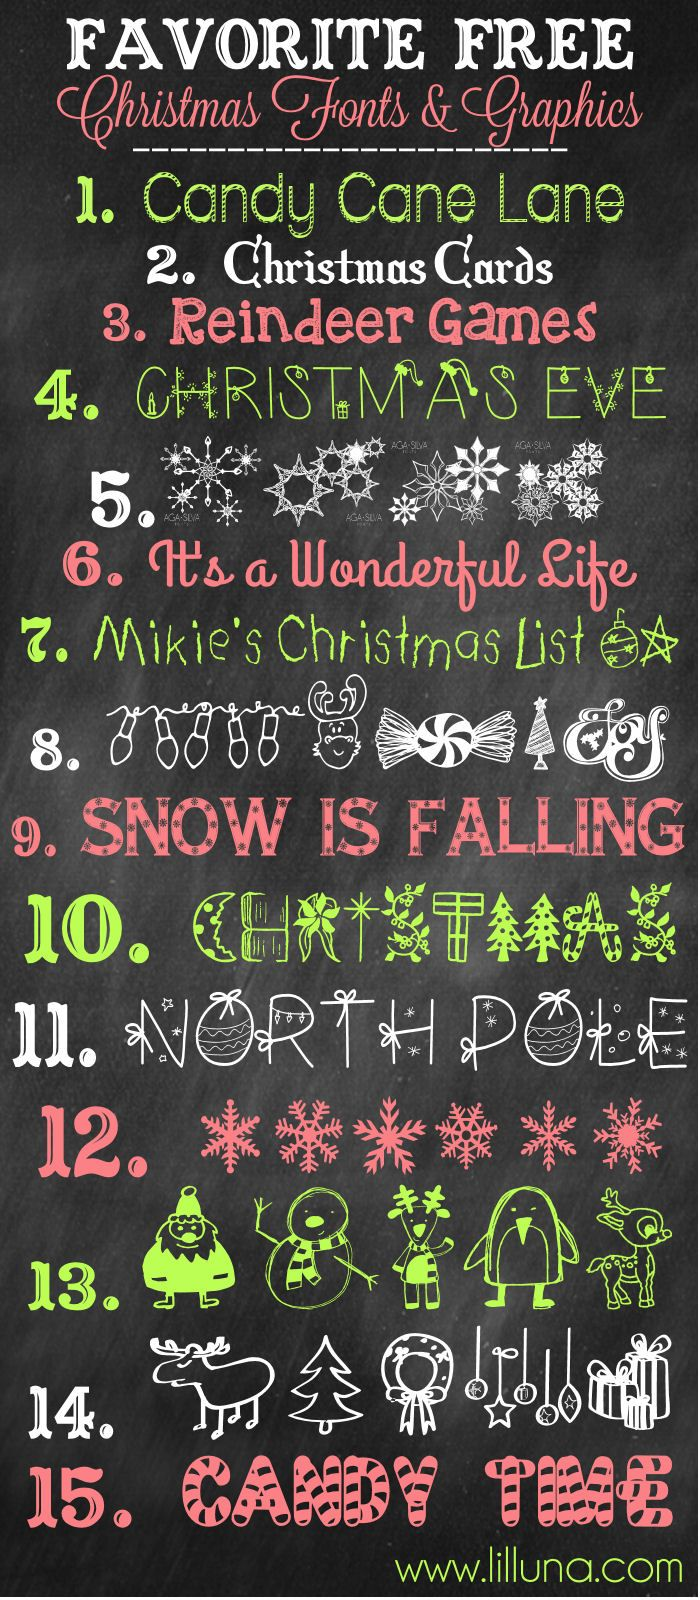 Favorite Free Christmas Fonts and Graphics to download and use! { lilluna.com }